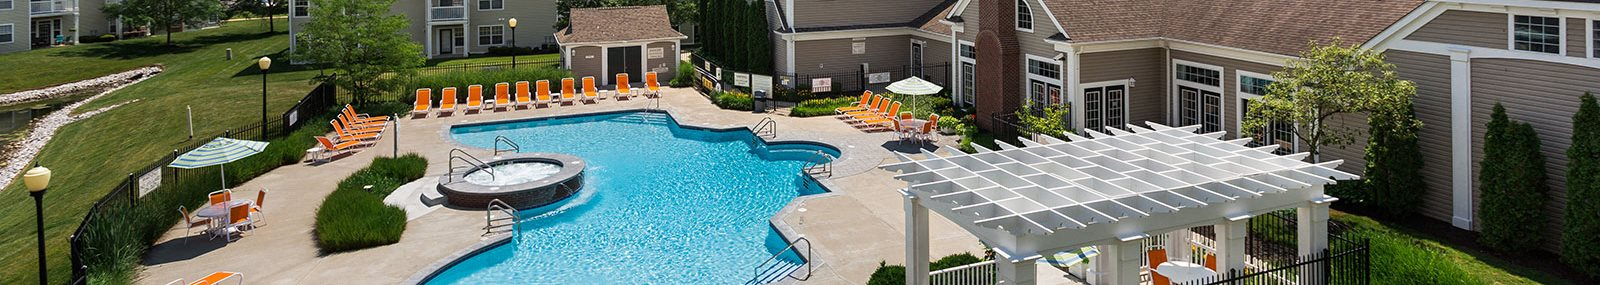 Outdoor Aquatic Spa with Cascading Waterfall at Latitudes Apartments, Indianapolis, Indiana